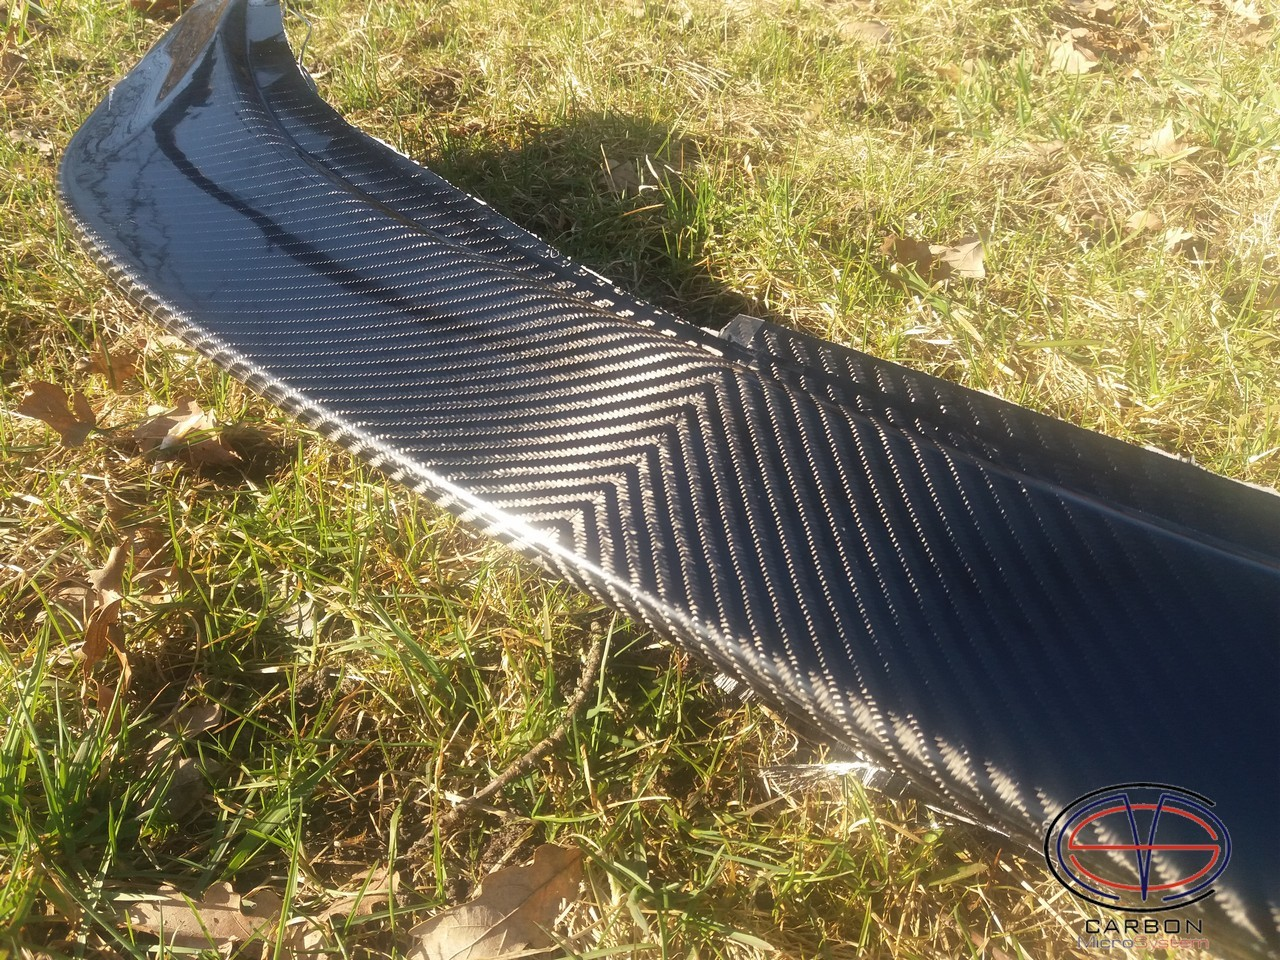 Spoiler for Toyota Gt86, Subaru BRZ, Scion FR-S from Carbon Fiber